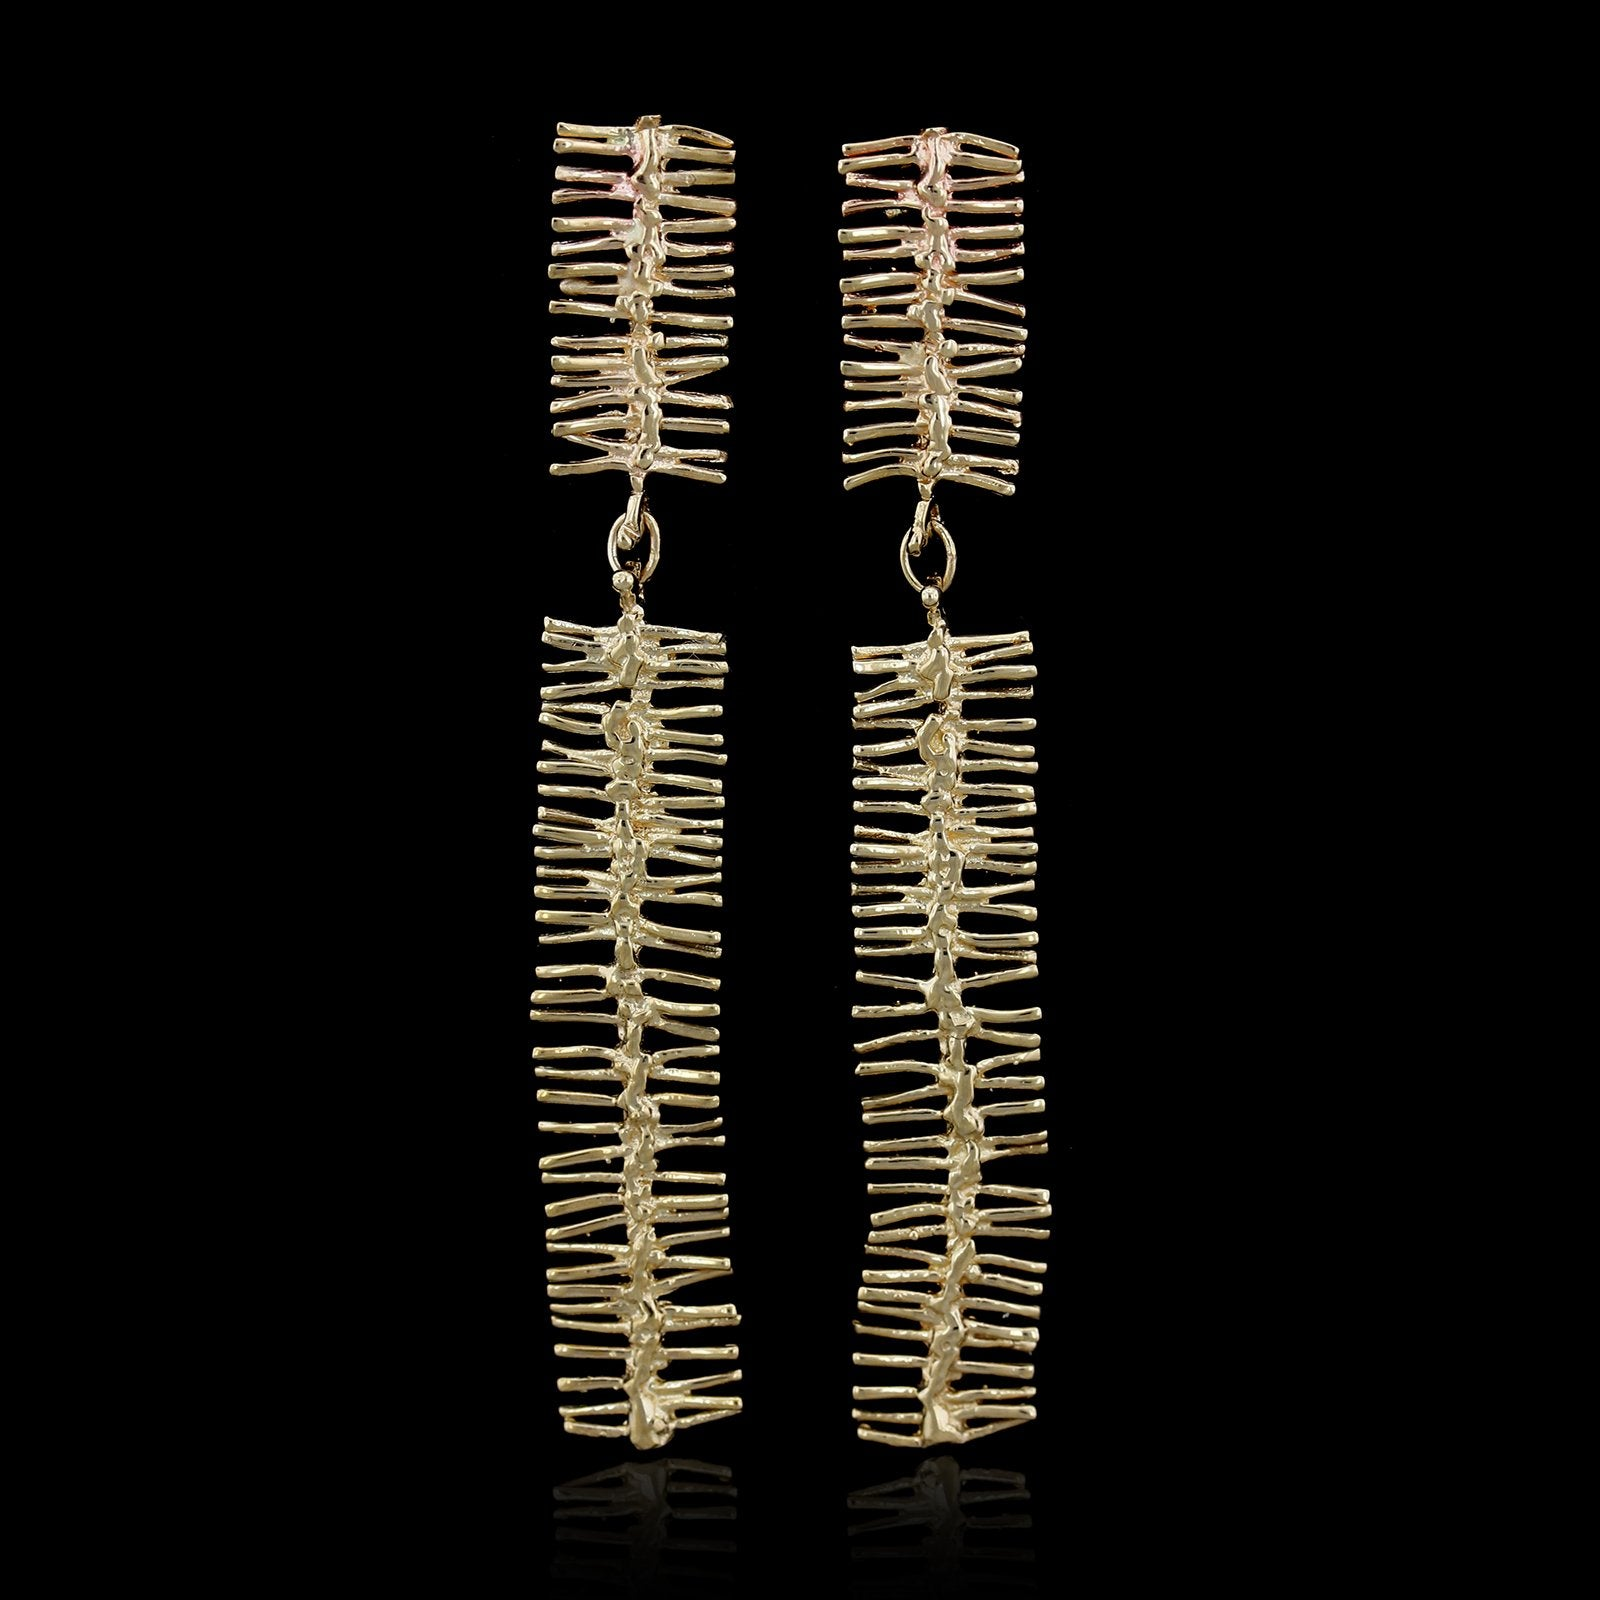 14K Yellow Gold Estate Drop Earrings